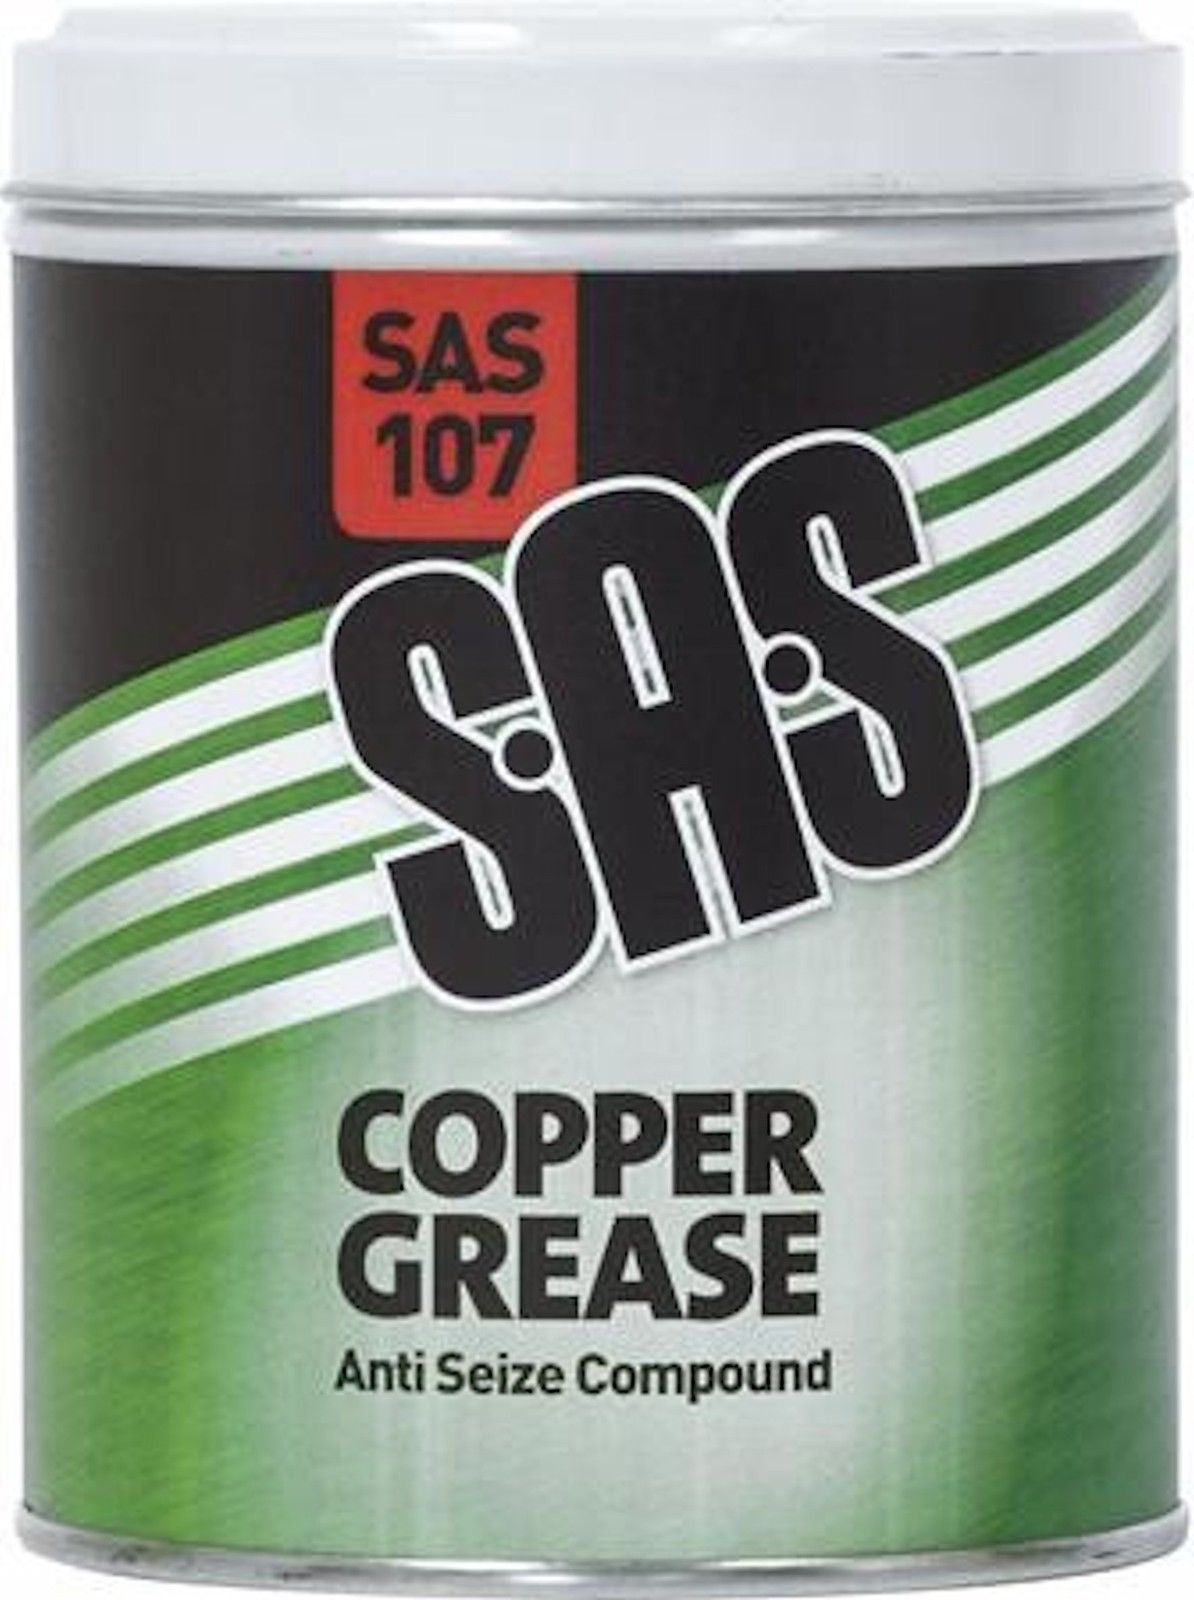 SAS COPPER GREASE ANTI SEIZE COMPOUND SAS107 1 x 500G TIN | Clarik